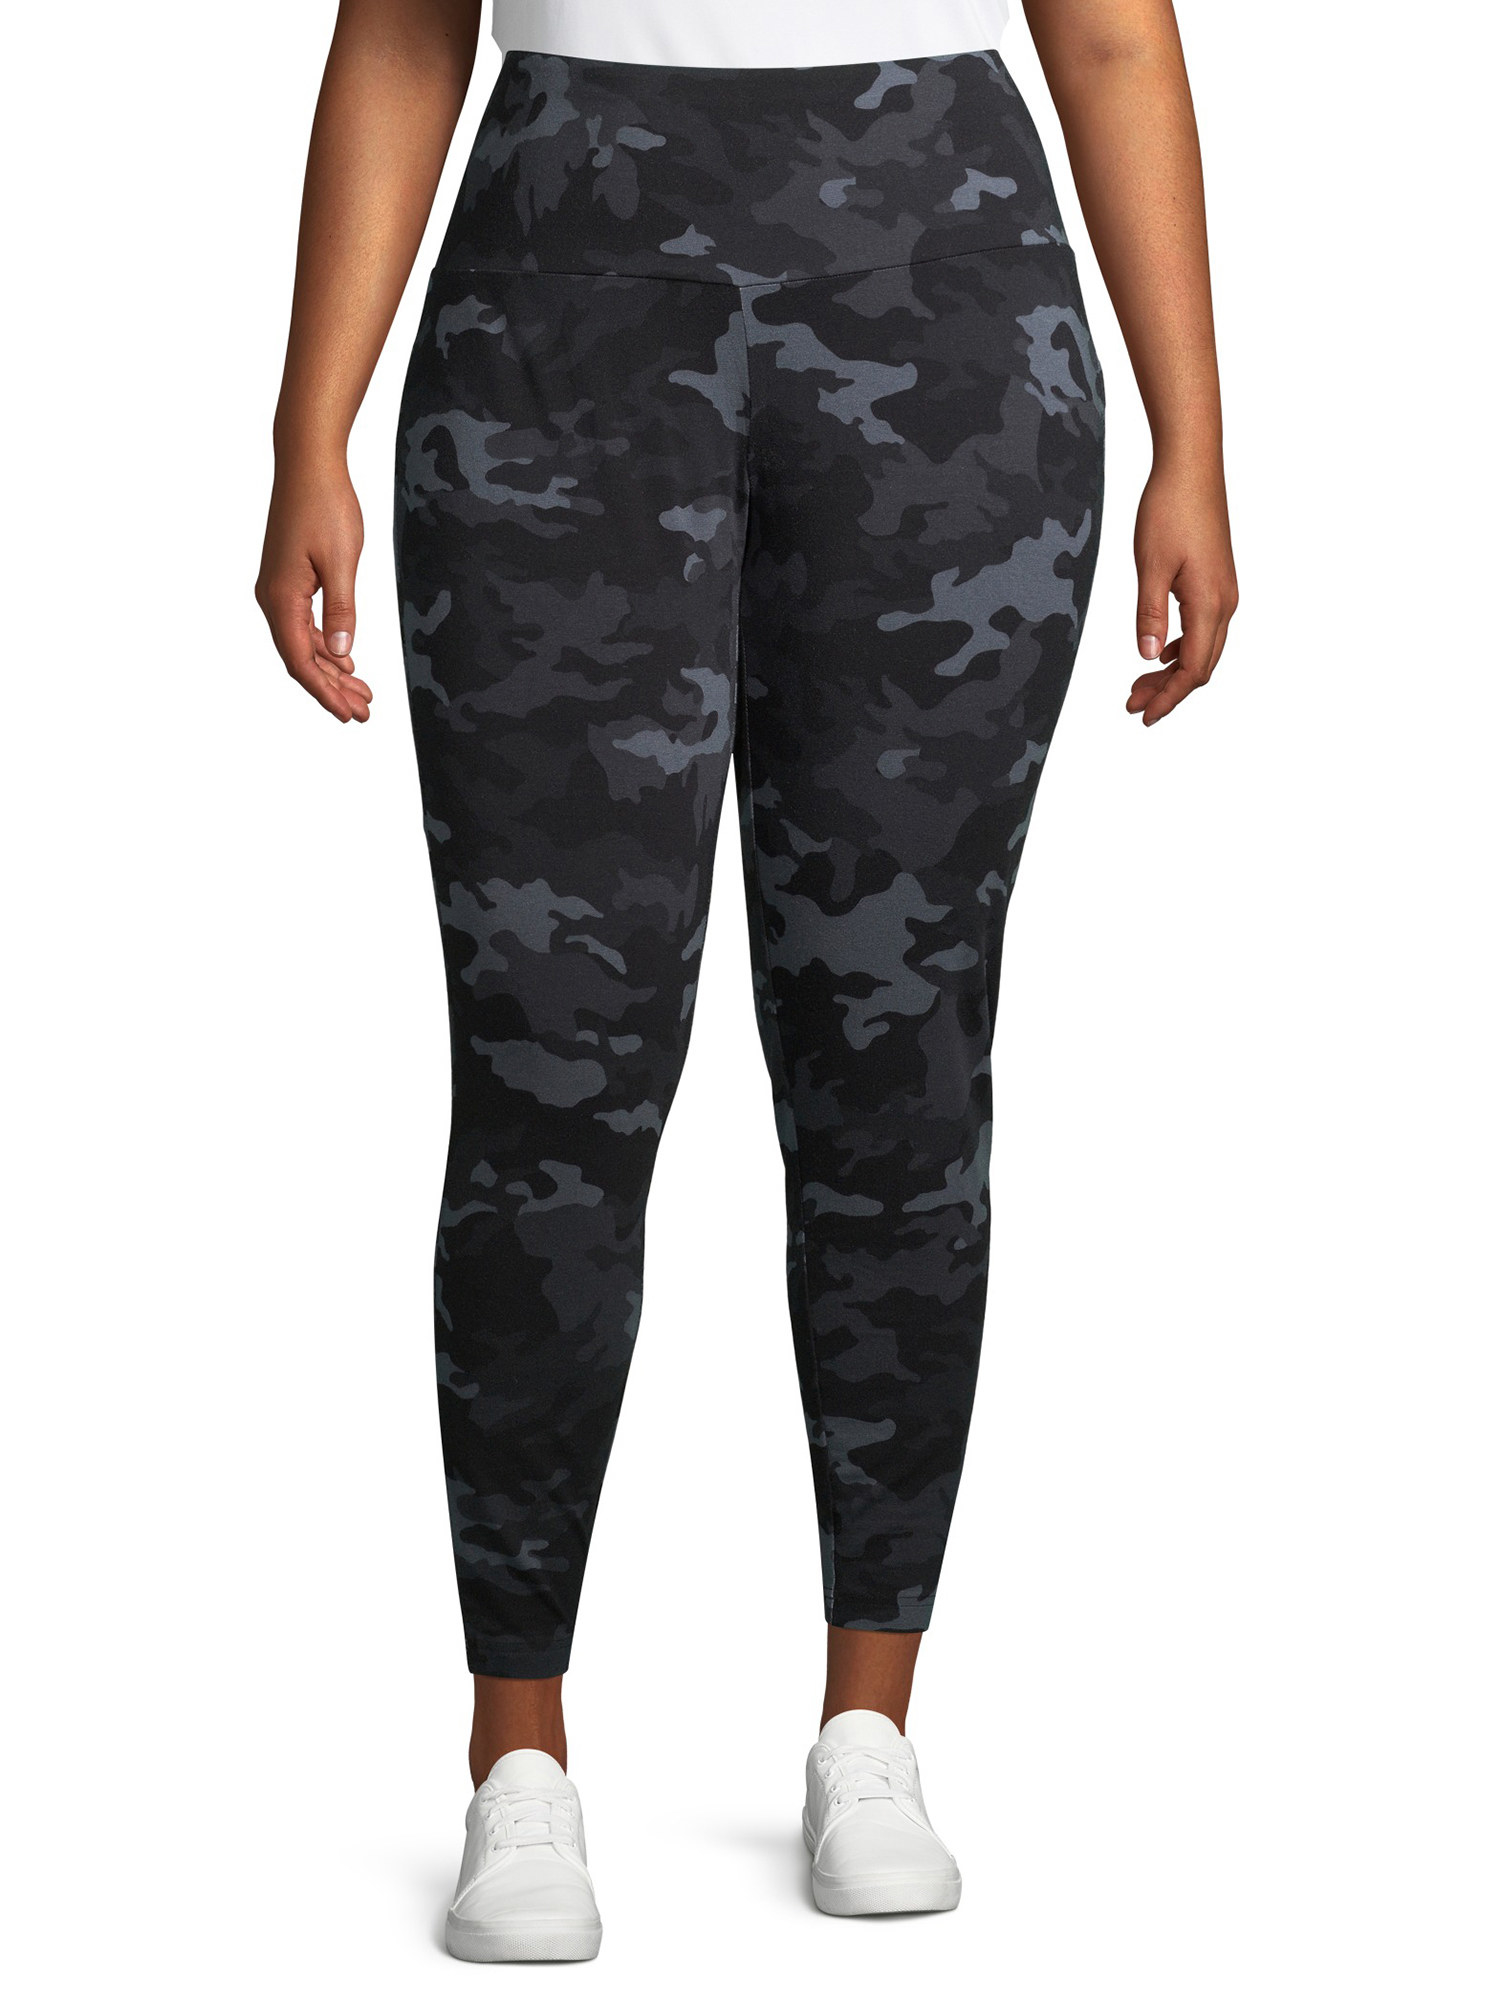 The grey and black camo leggings